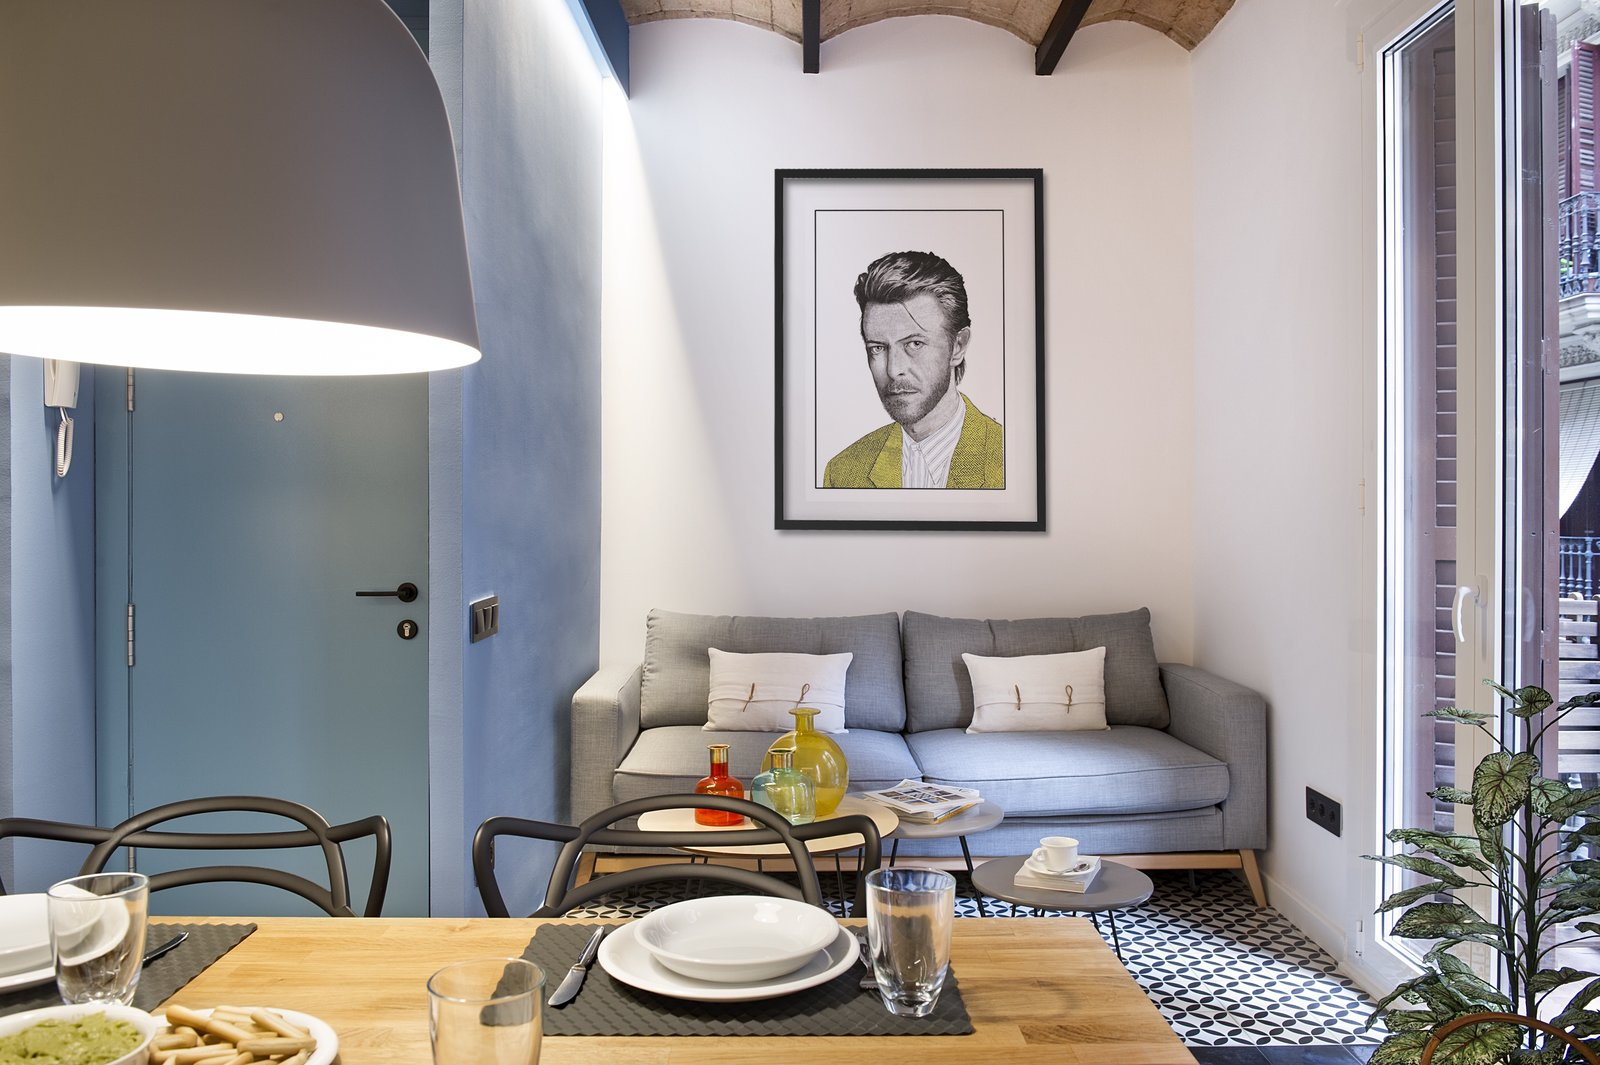 Tagged: Living Room, Coffee Tables, Pendant Lighting, and Sofa. A Smart Layout Maximizes Space in This Compact Urban Beach Apartment in Barcelona - Photo 3 of 11